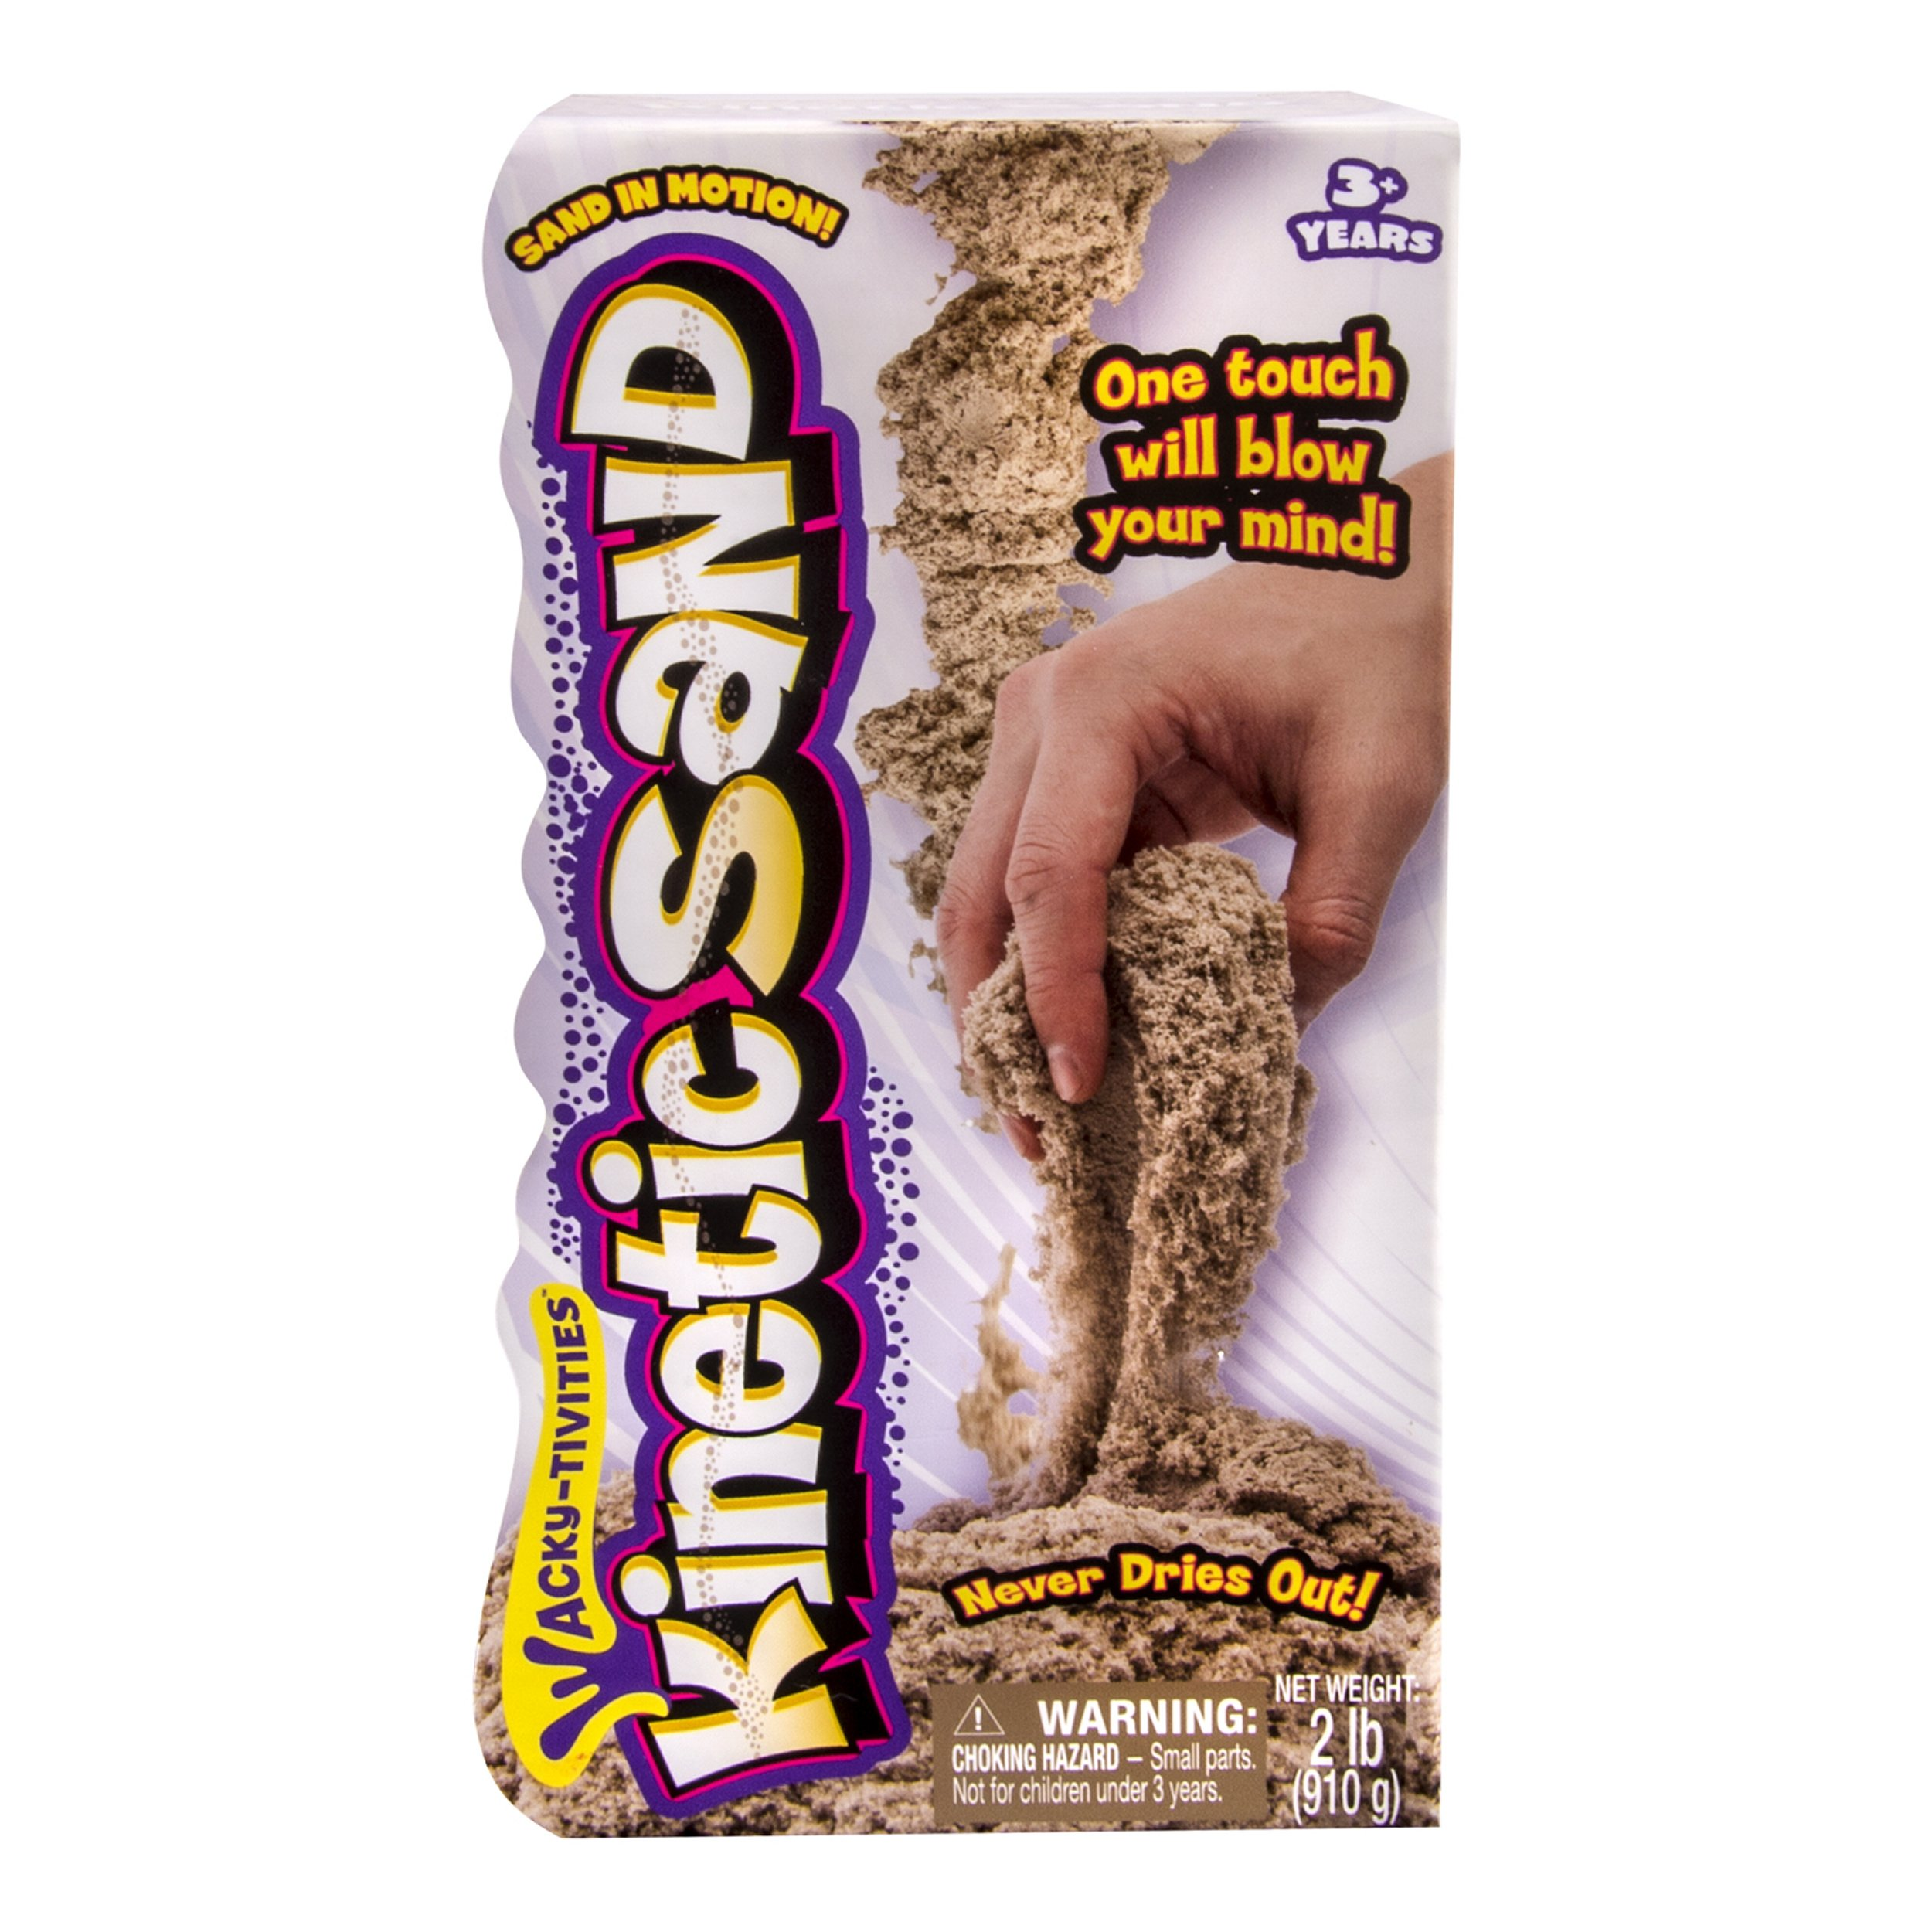 Kinetic Sand The One Only, 2lb Brown ages 3 up.